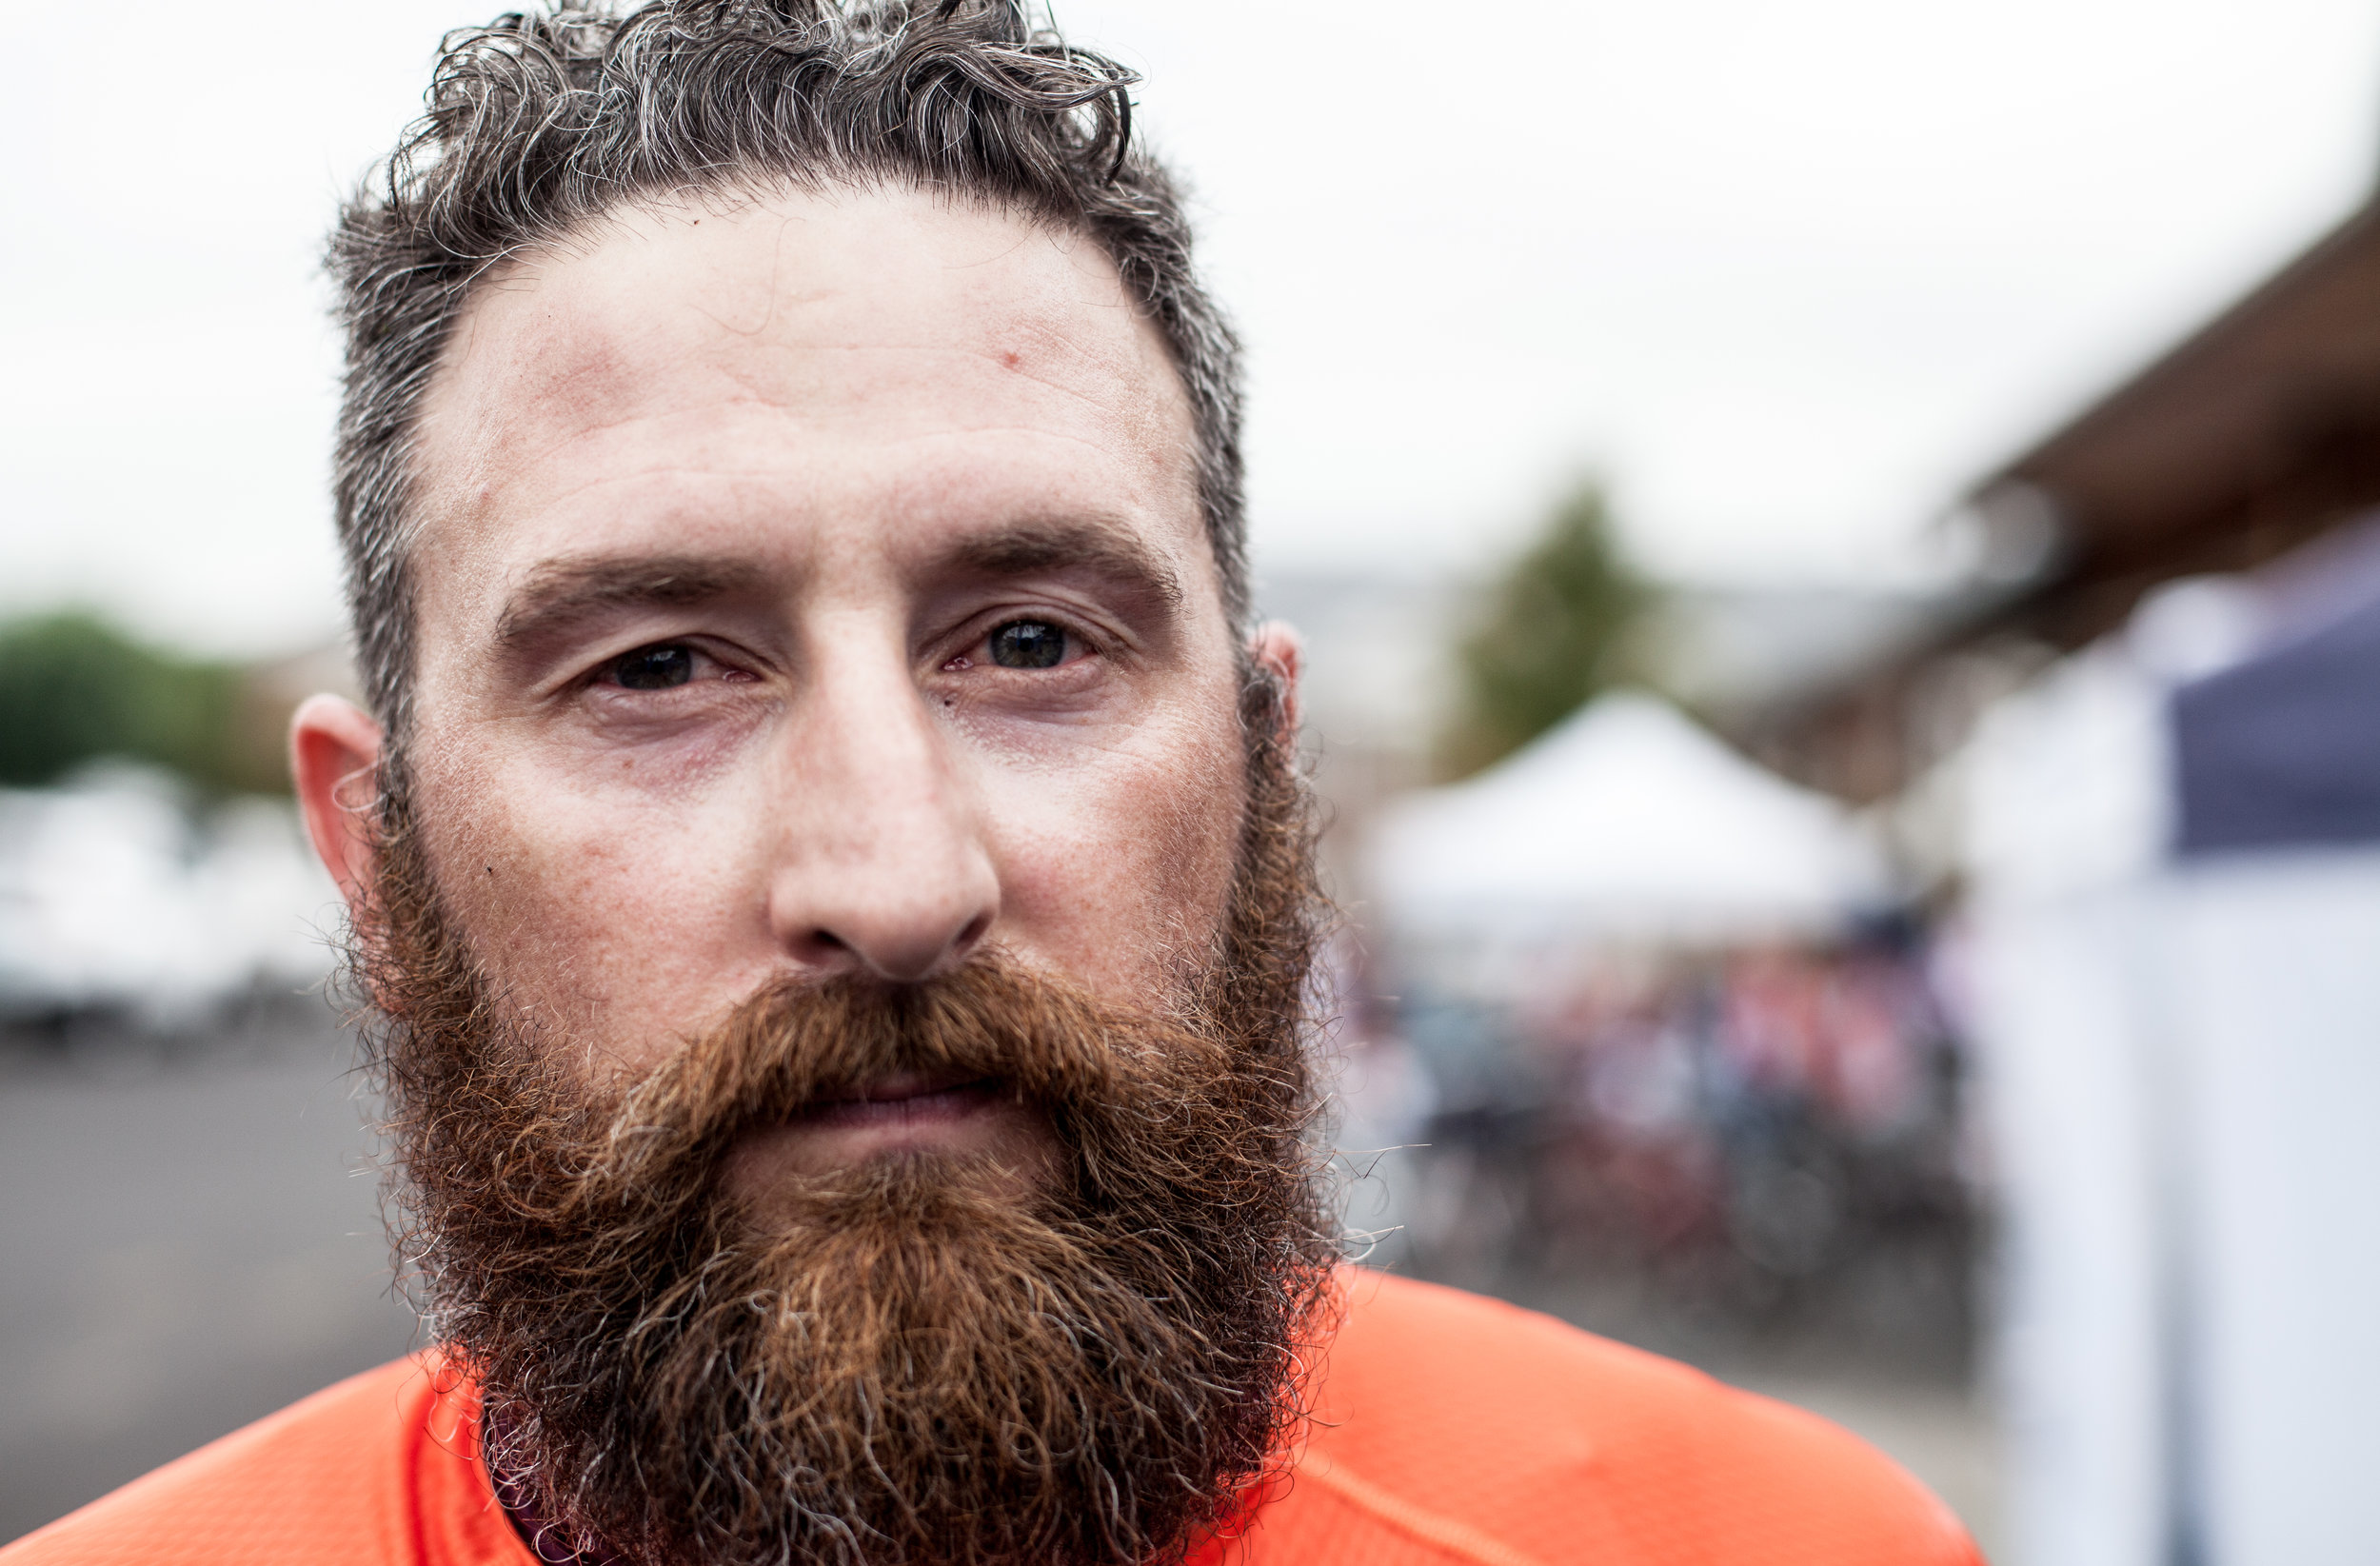 Matt Hawkins, clearly out to catch some miles in that beard.